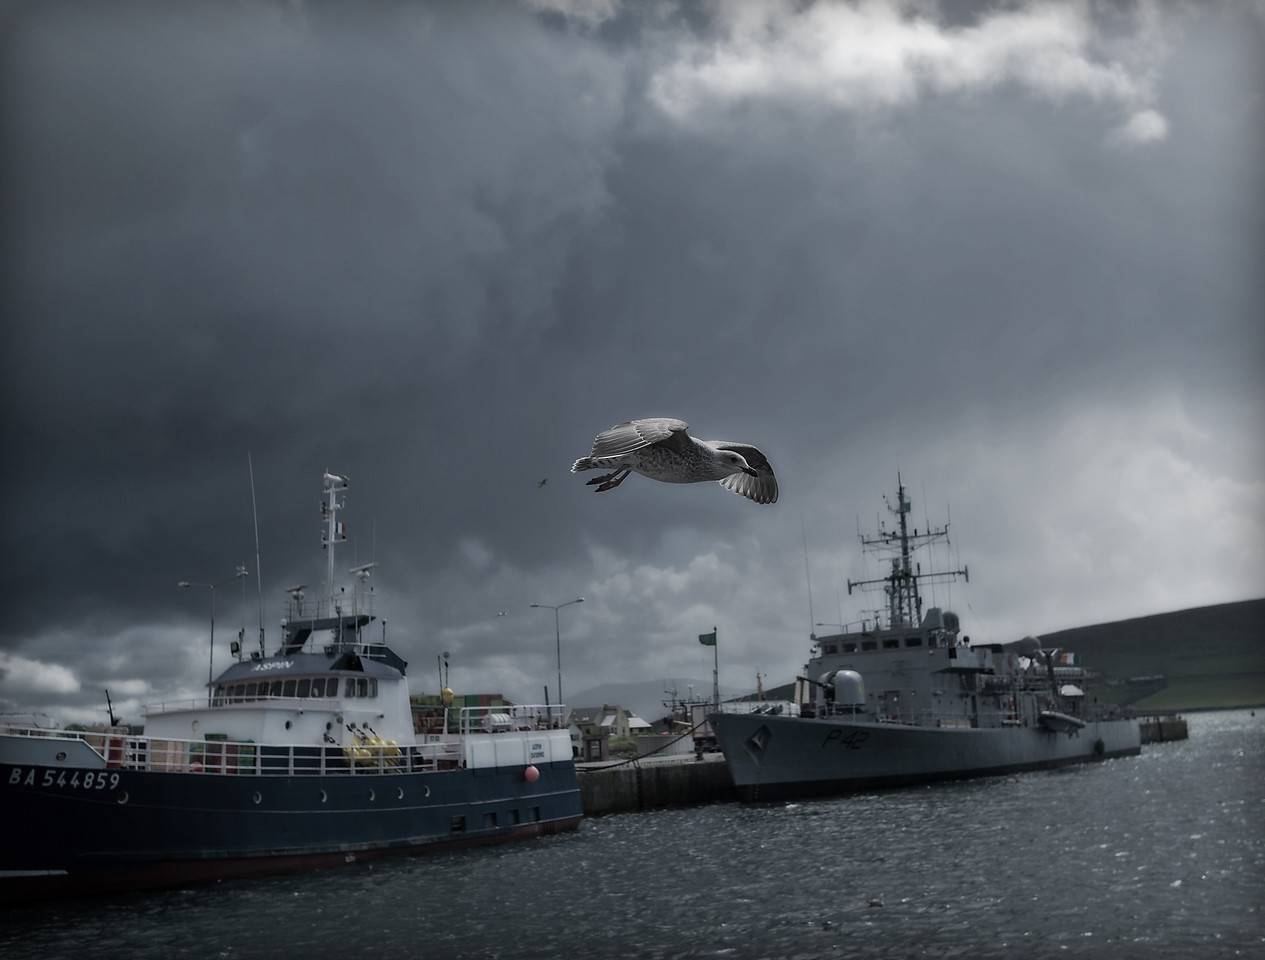 27/08/2011 'No bird soars too high if he soars with his own wings - William Blake' In the background of the picture there is an Irish naval ship which patrols the Irish coast for illegal fishing